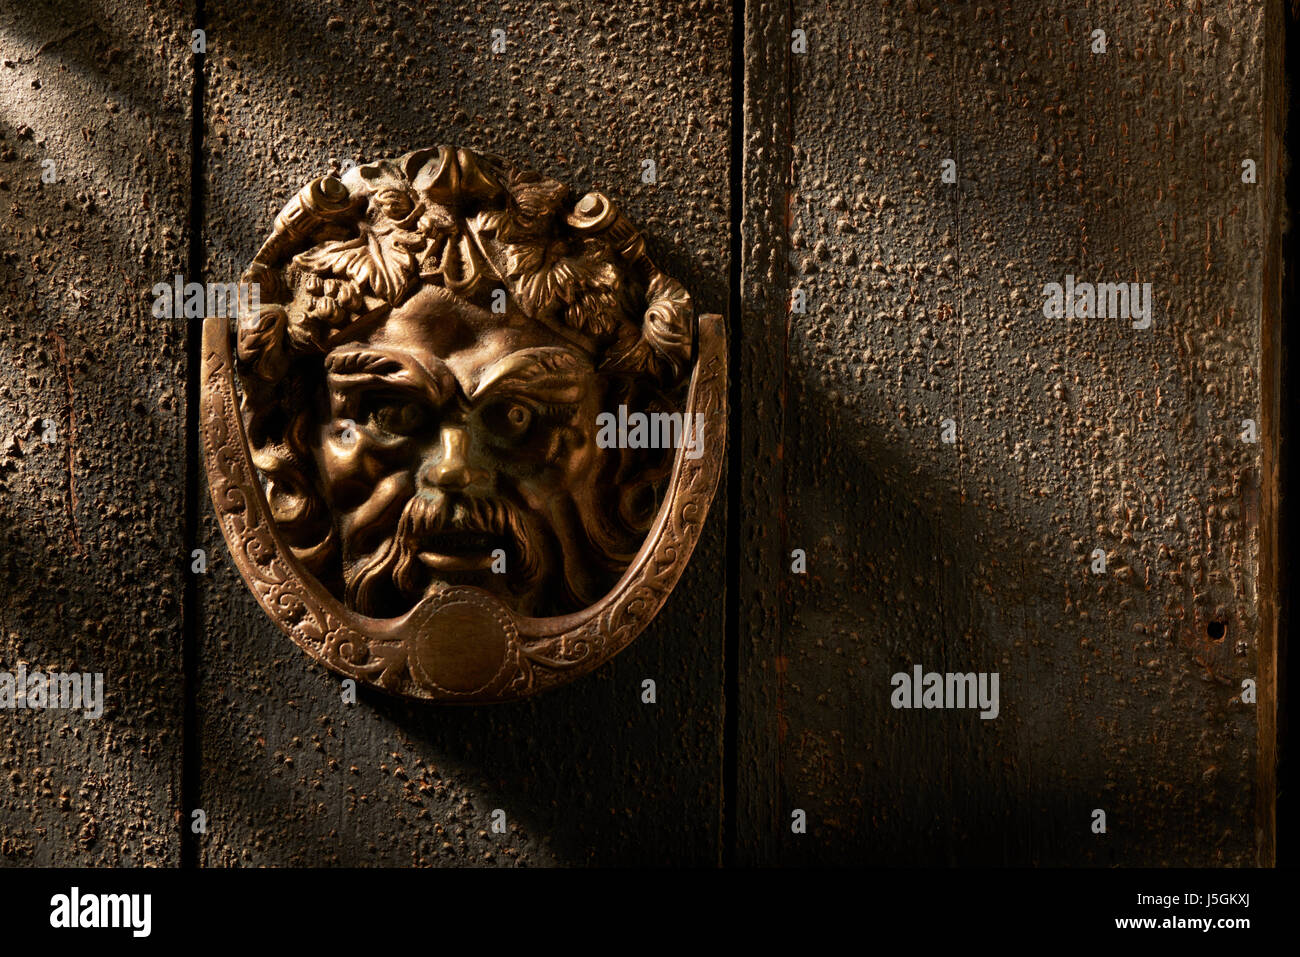 Ornate Brass Door Knocker - Stock Image